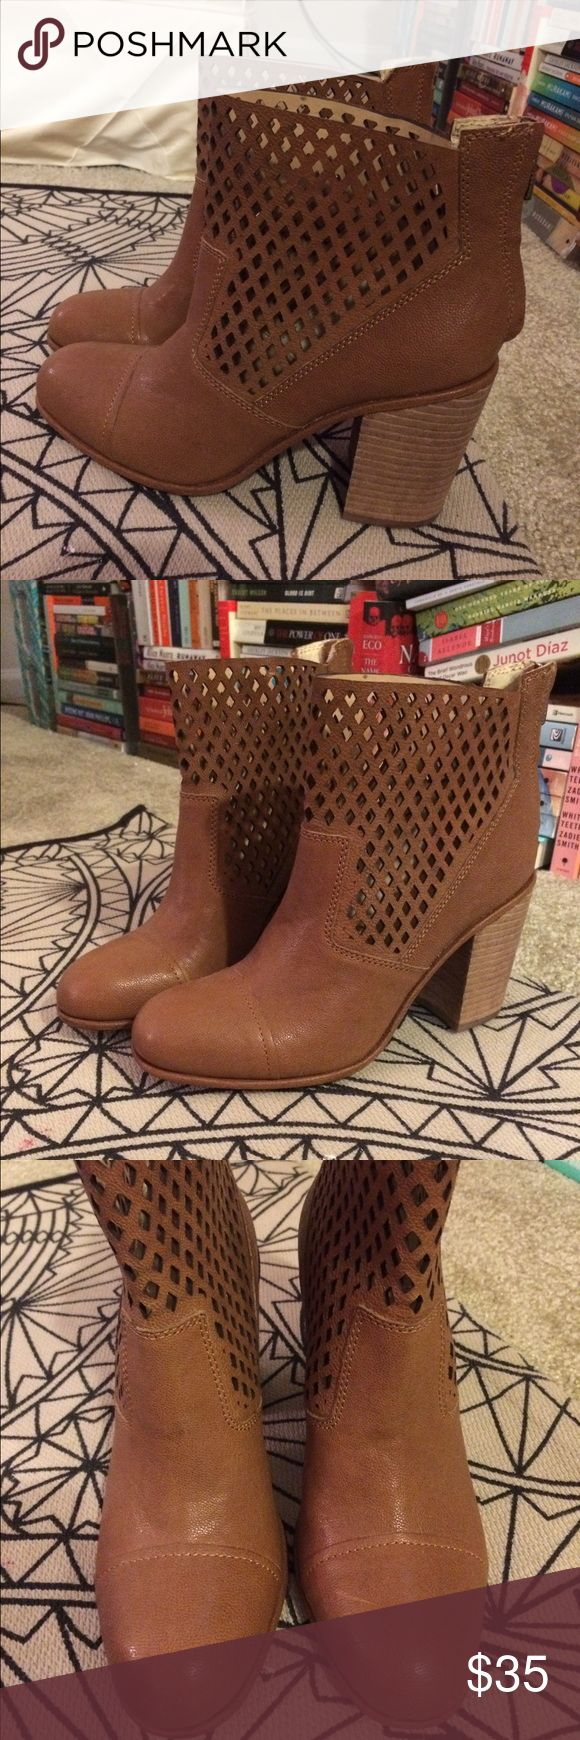 Calvin Klein Jeans tan leather booties -sz 8 Cute leather boots with a chunky heel. Never worn, perfect condition! Size 8 Calvin Klein Jeans Shoes Ankle Boots & Booties